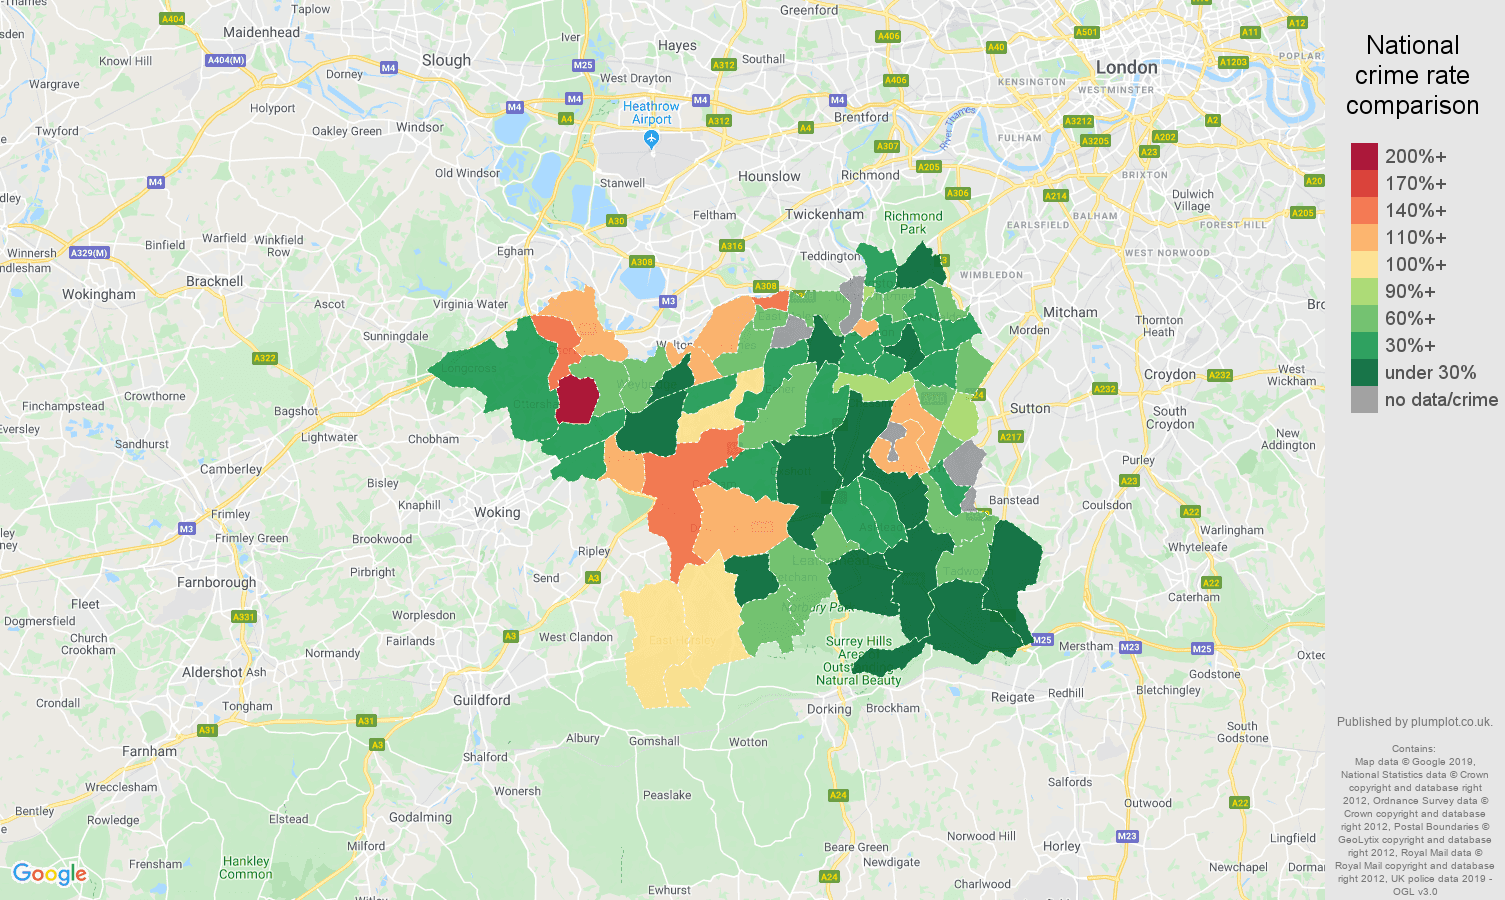 Kingston upon Thames other crime rate comparison map